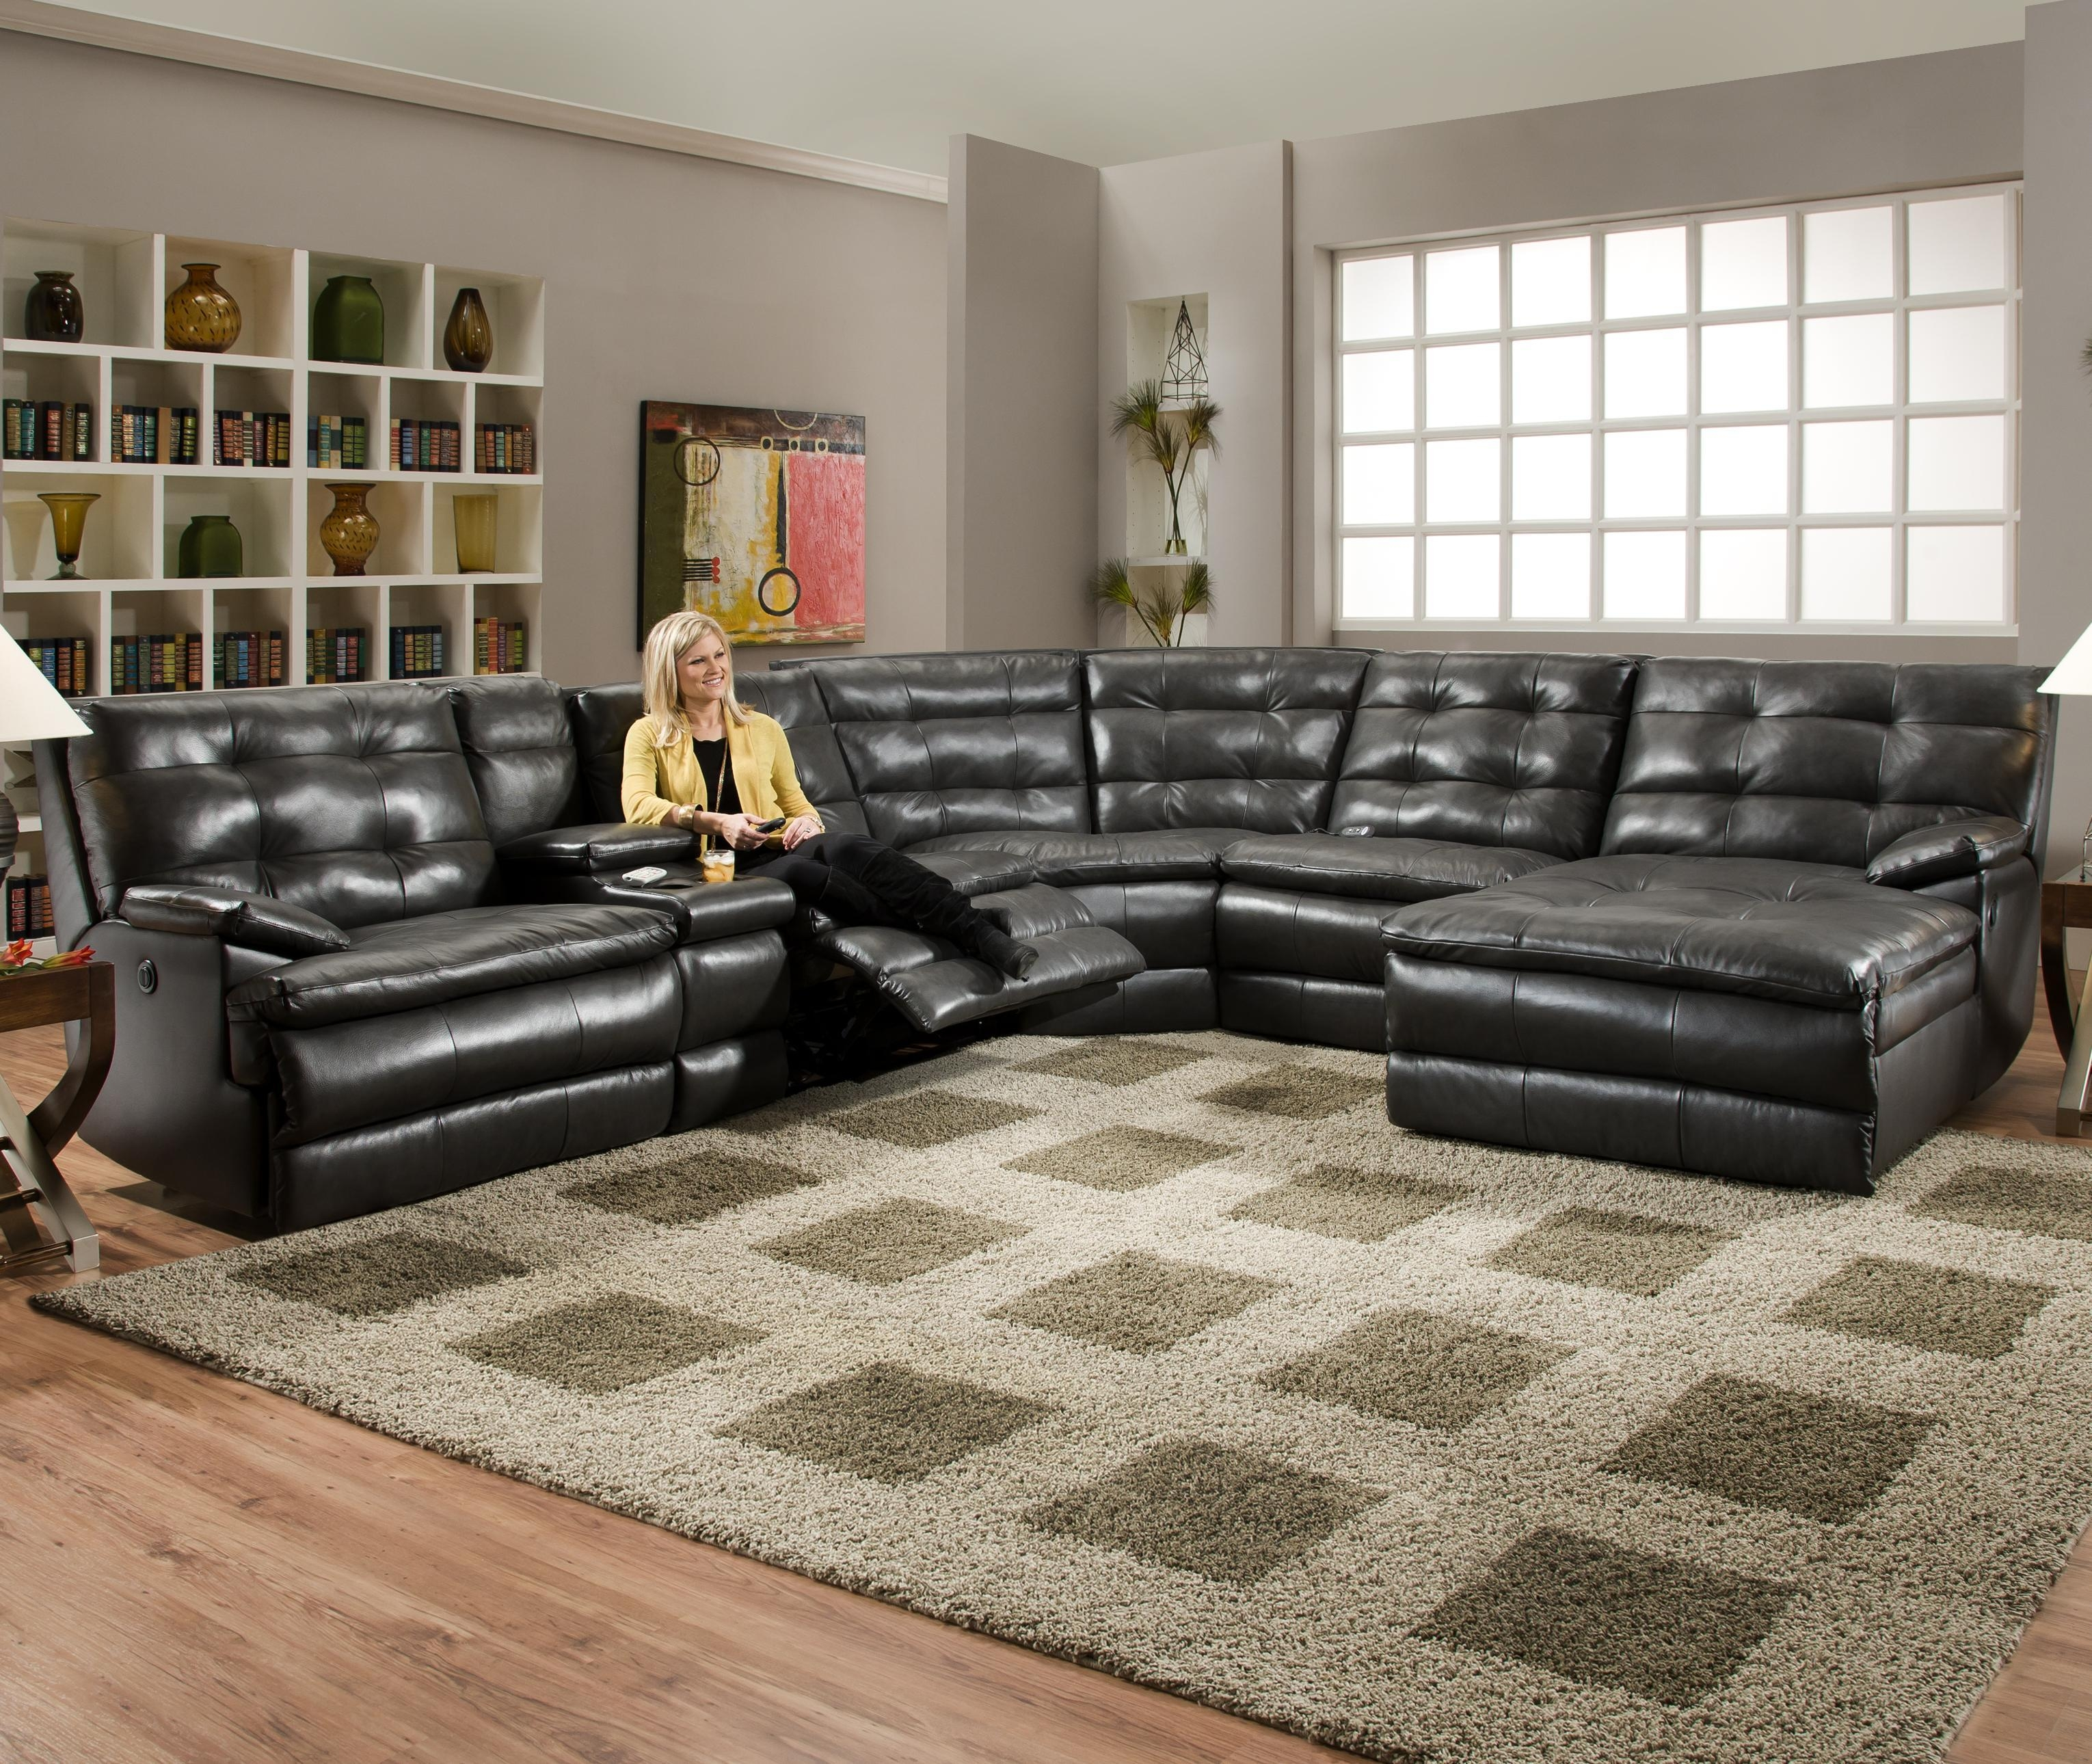 Inspirational Reclinable Sectional Sofas 77 About Remodel The Bay With Regard To The Bay Sofas (View 15 of 20)